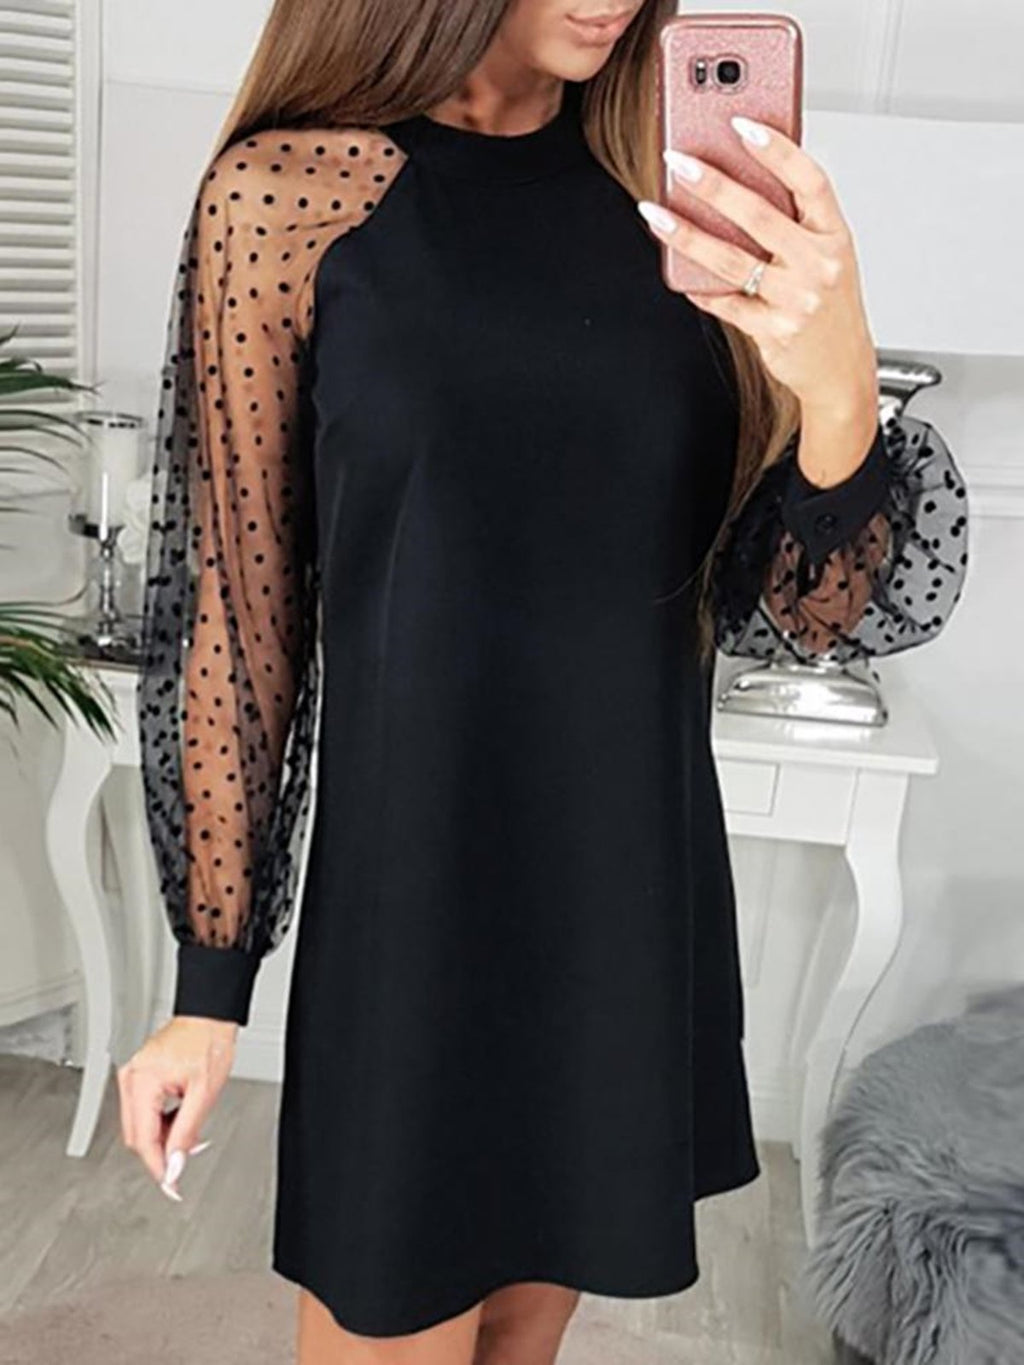 Black Plus Size Mesh Overlay Dot Long Sleeve Homecoming Casual Dress Rikkishop